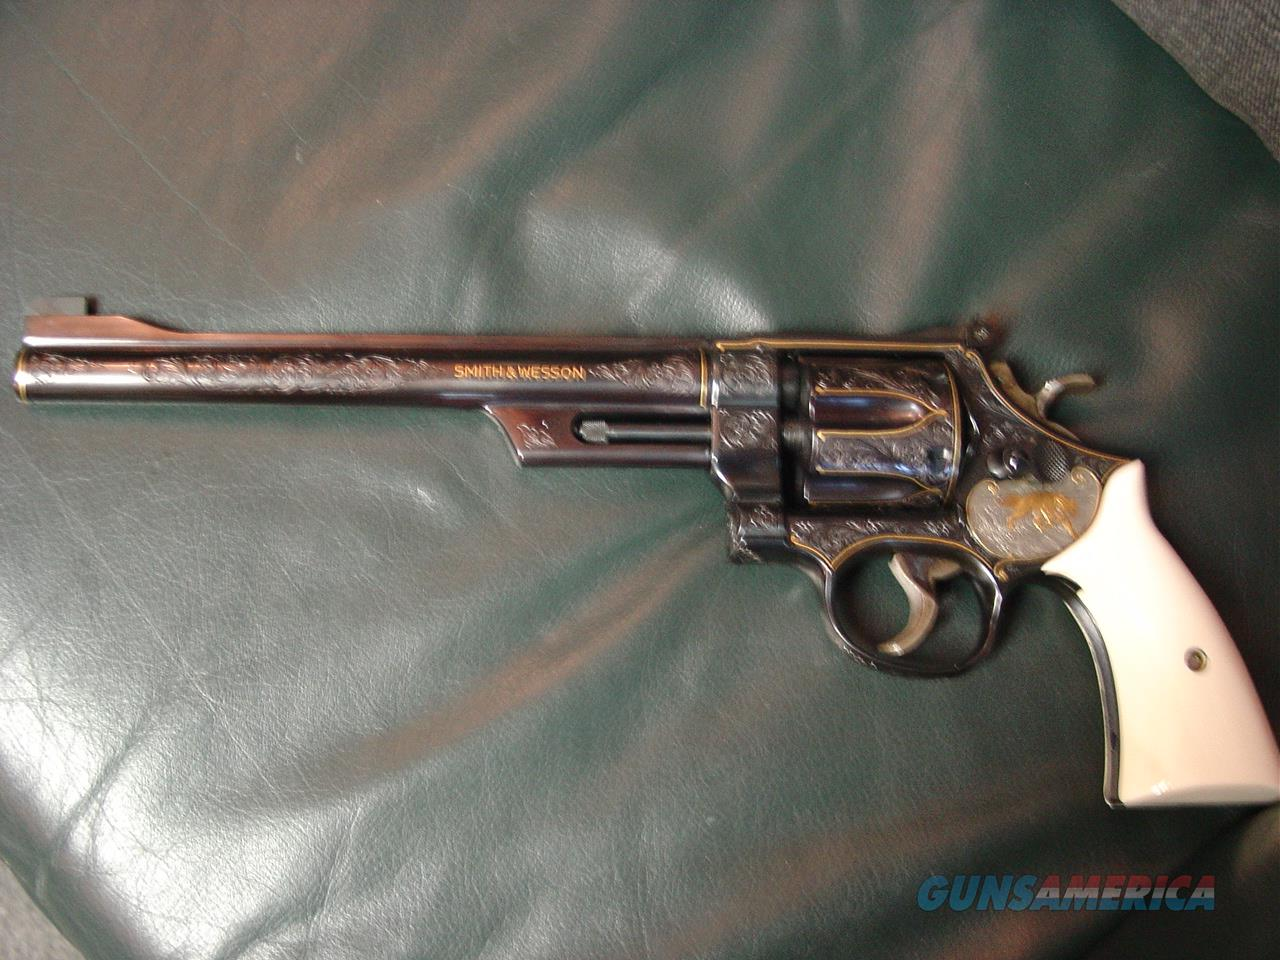 "Smith & Wesson 27-2,signed-Angelo Bee Master engraved,with 24K animals,24k inlays,real ivory grips,8 3/8"",357 magnum,around 40 years old,& photos cant describe this masterpiece enough-awesome one of a kind.  Guns > Pistols > Smith & Wesson Revolvers > Full Frame Revolver"